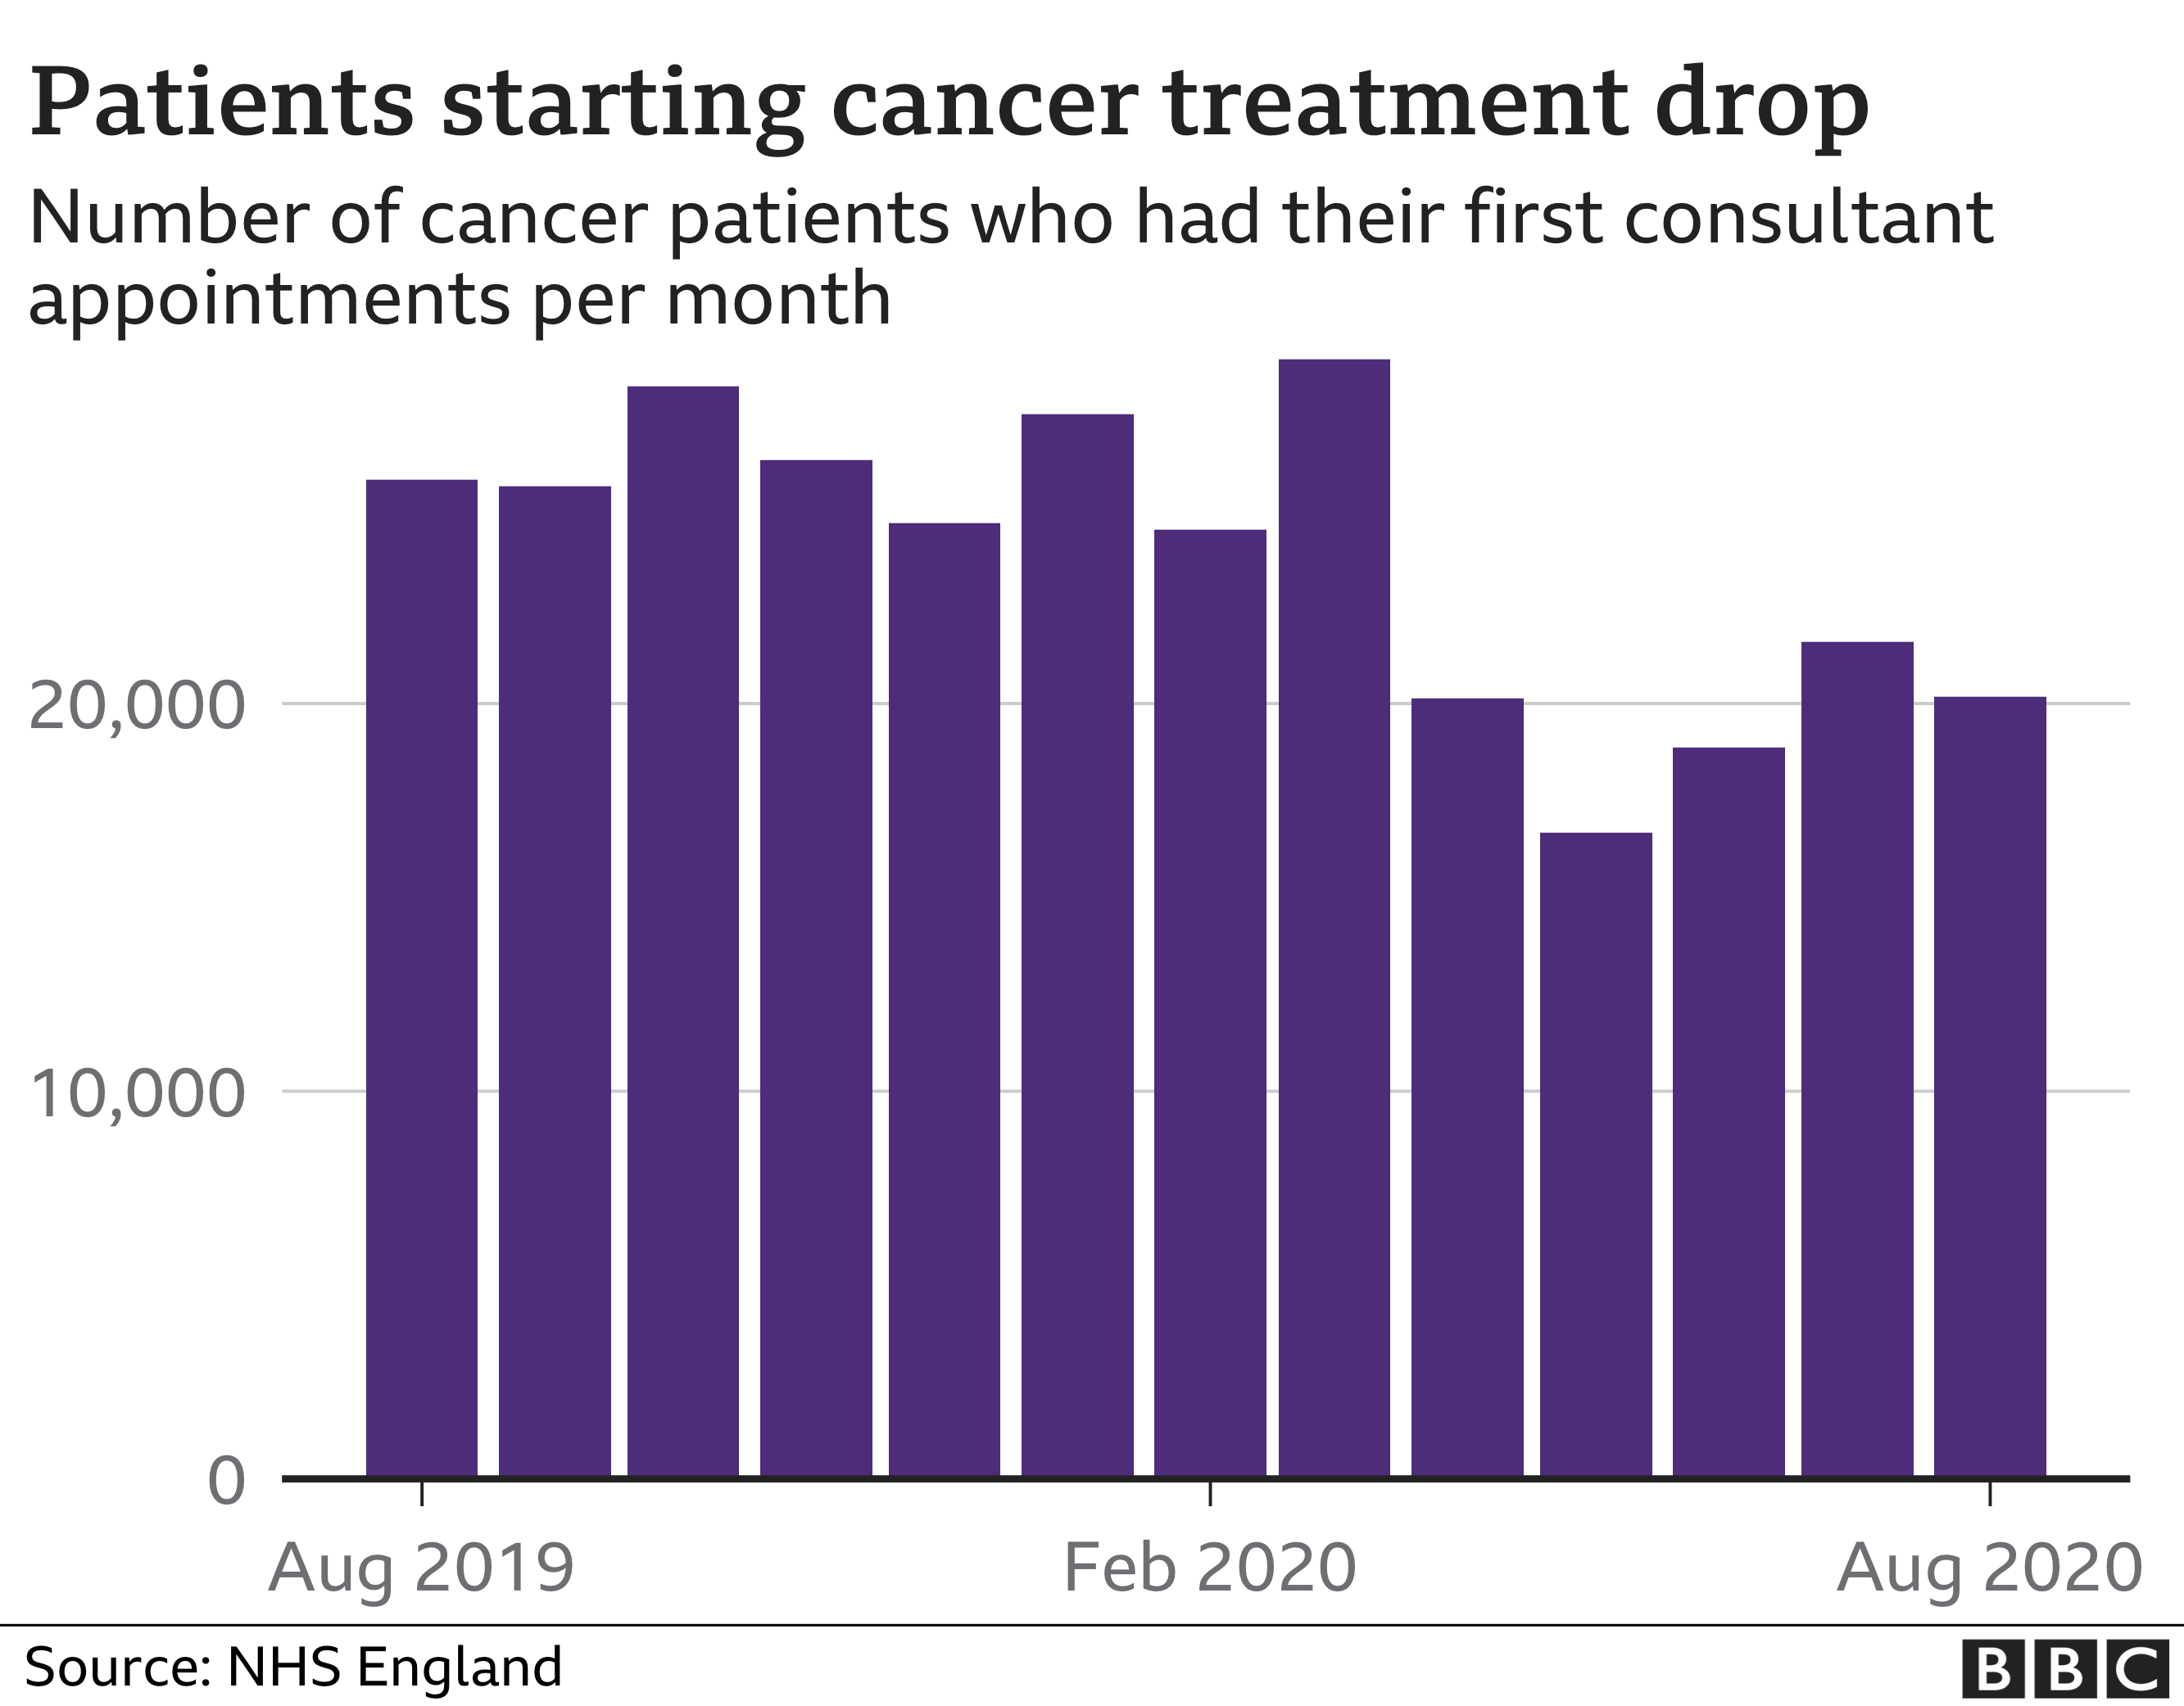 Drop in patients starting cancer treatment